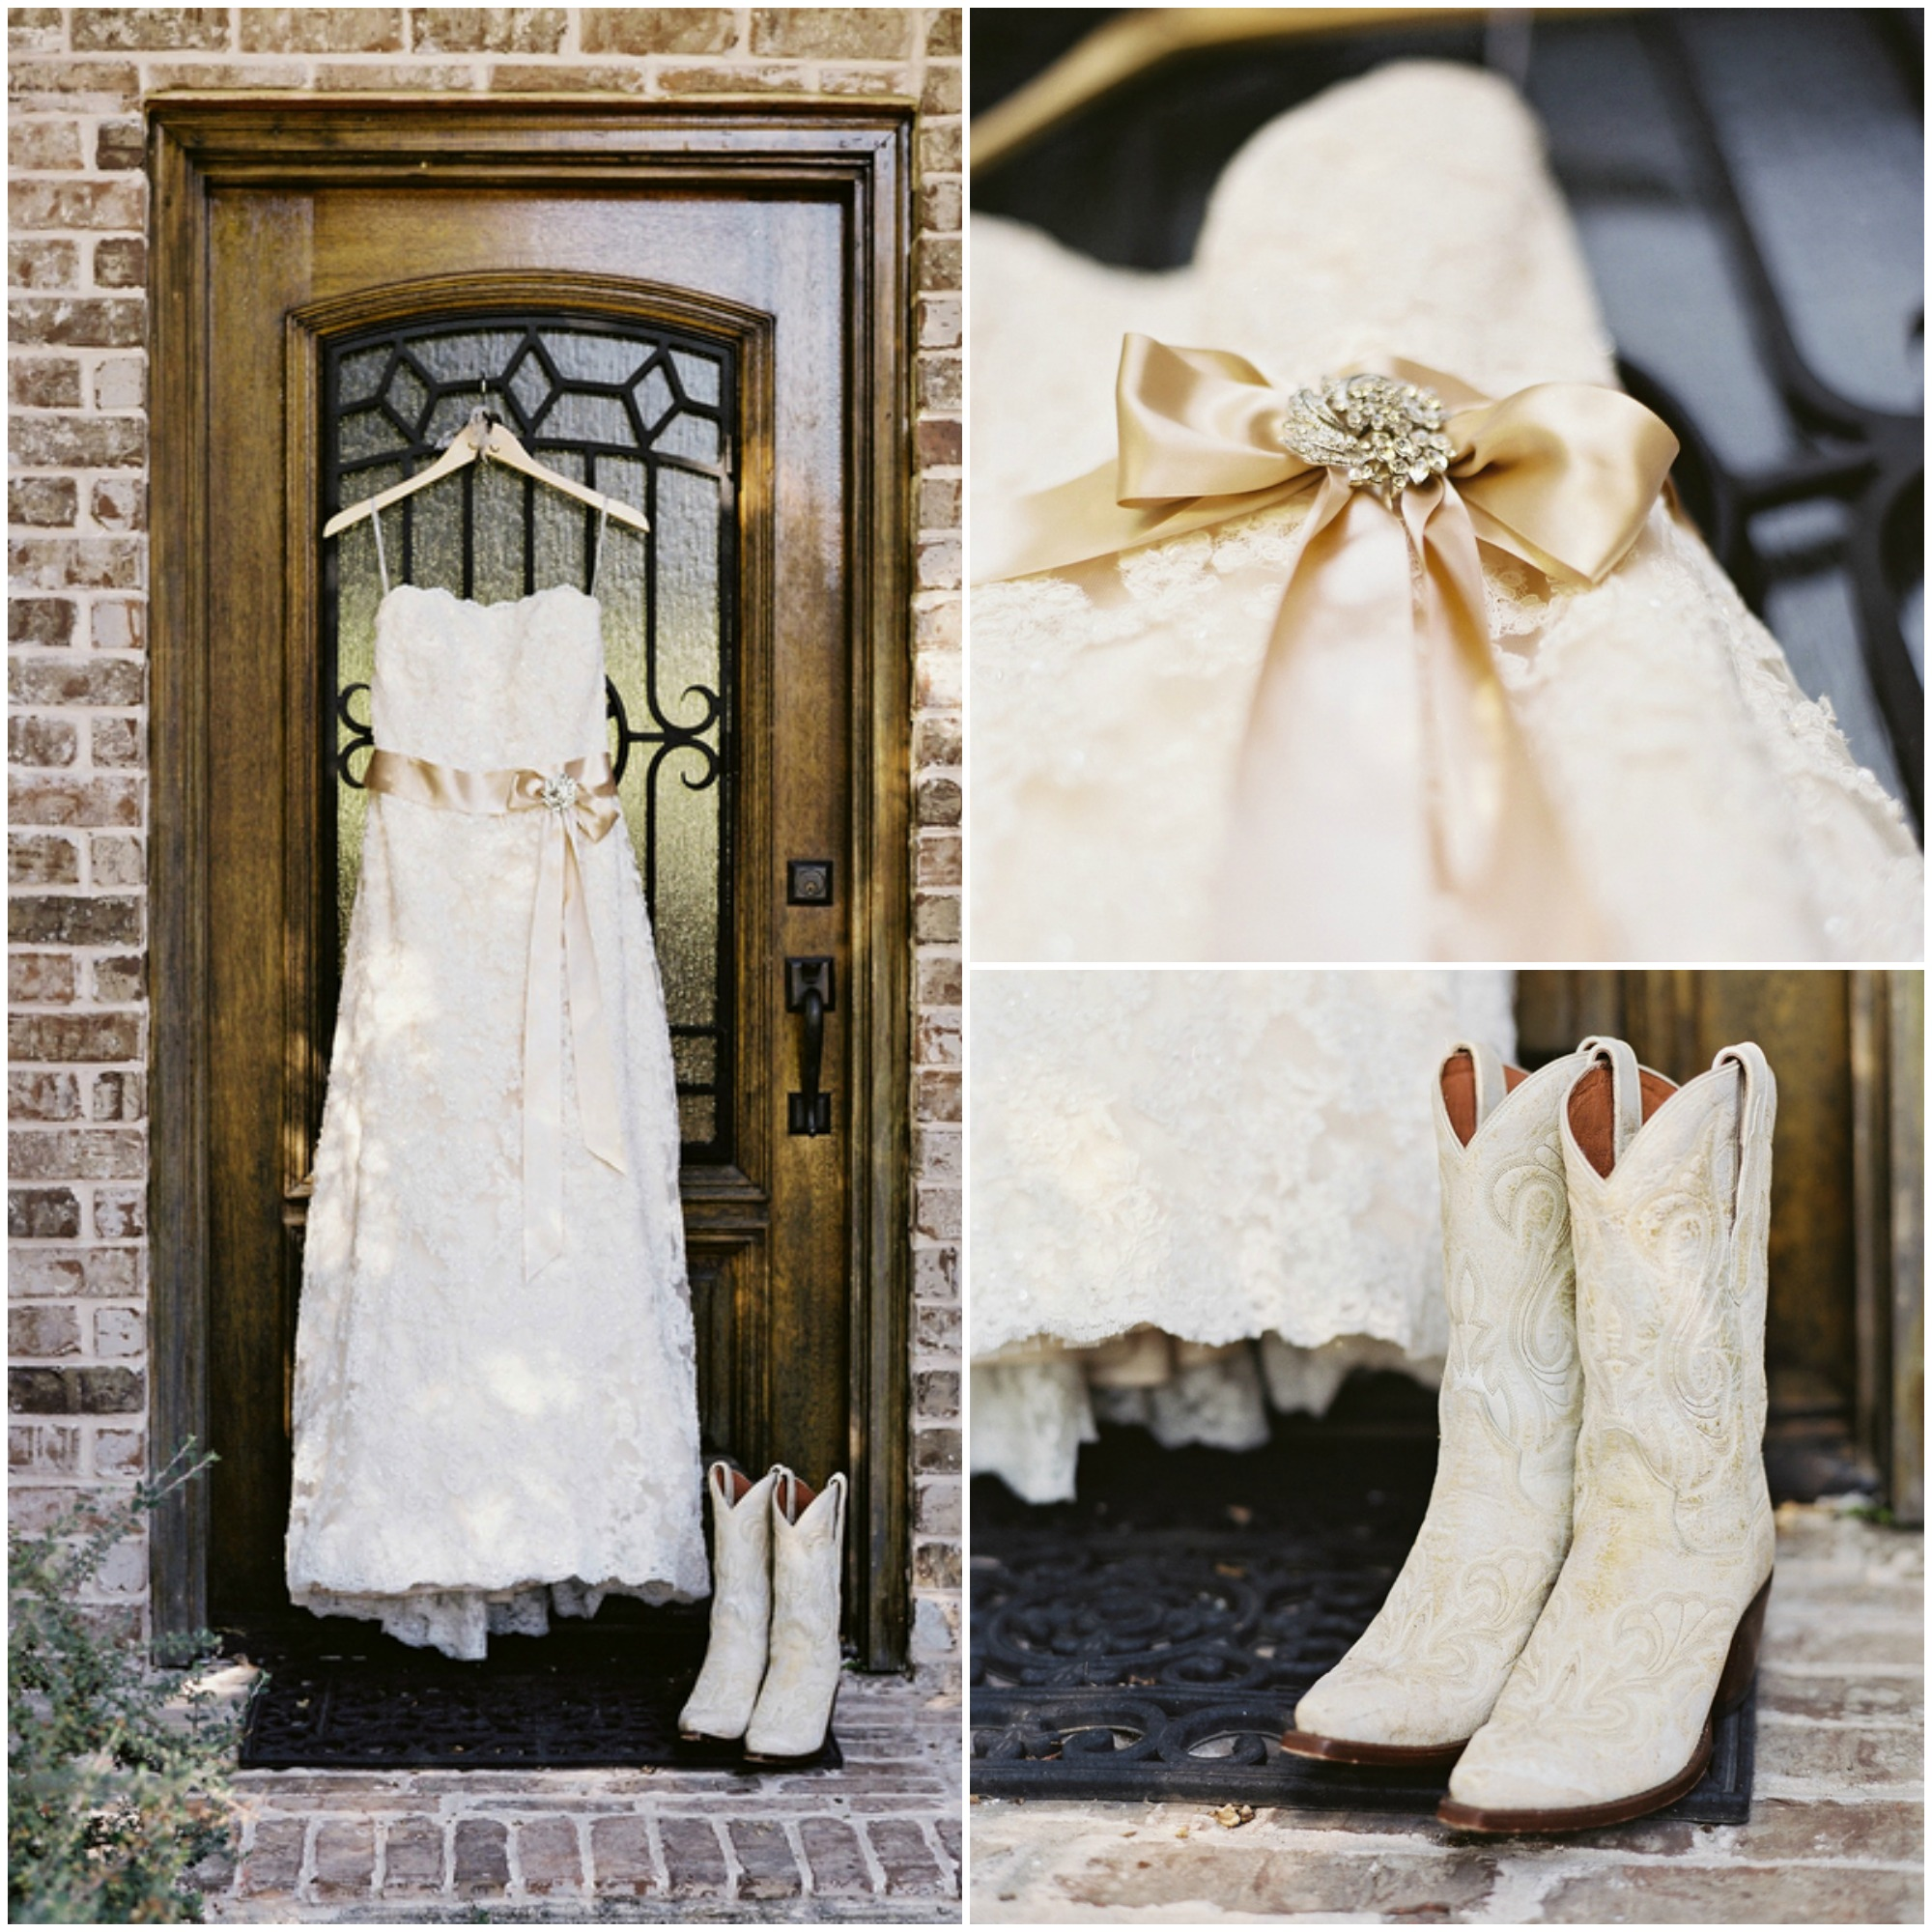 Wildcard Wednesday Cowboy Boots Fantastical Wedding Stylings